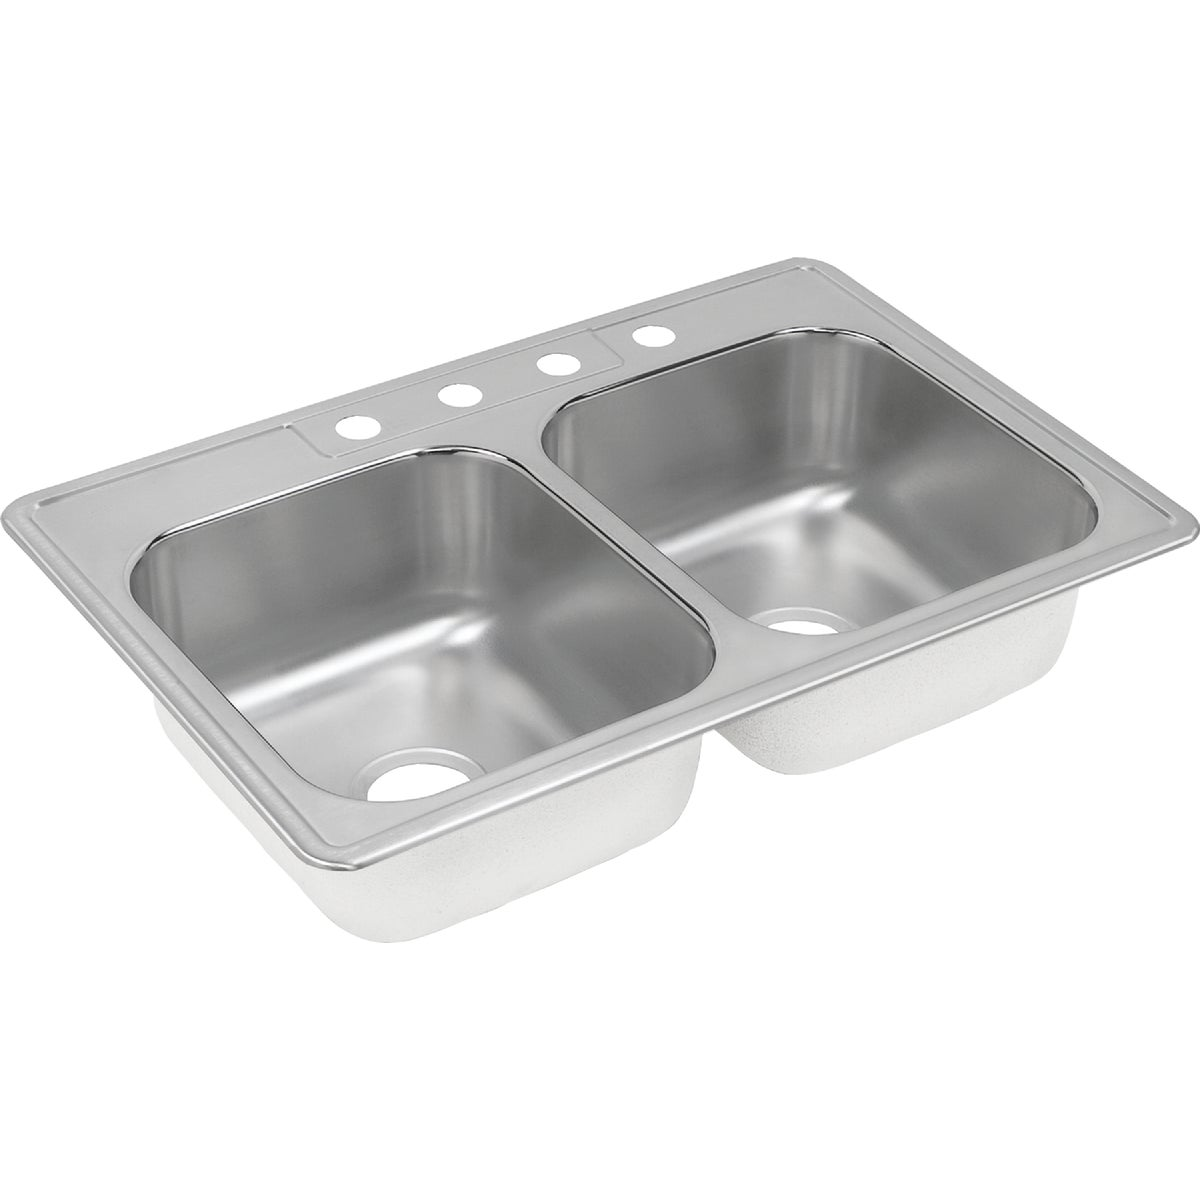 "8"" SS DOUBLE-BOWL SINK"